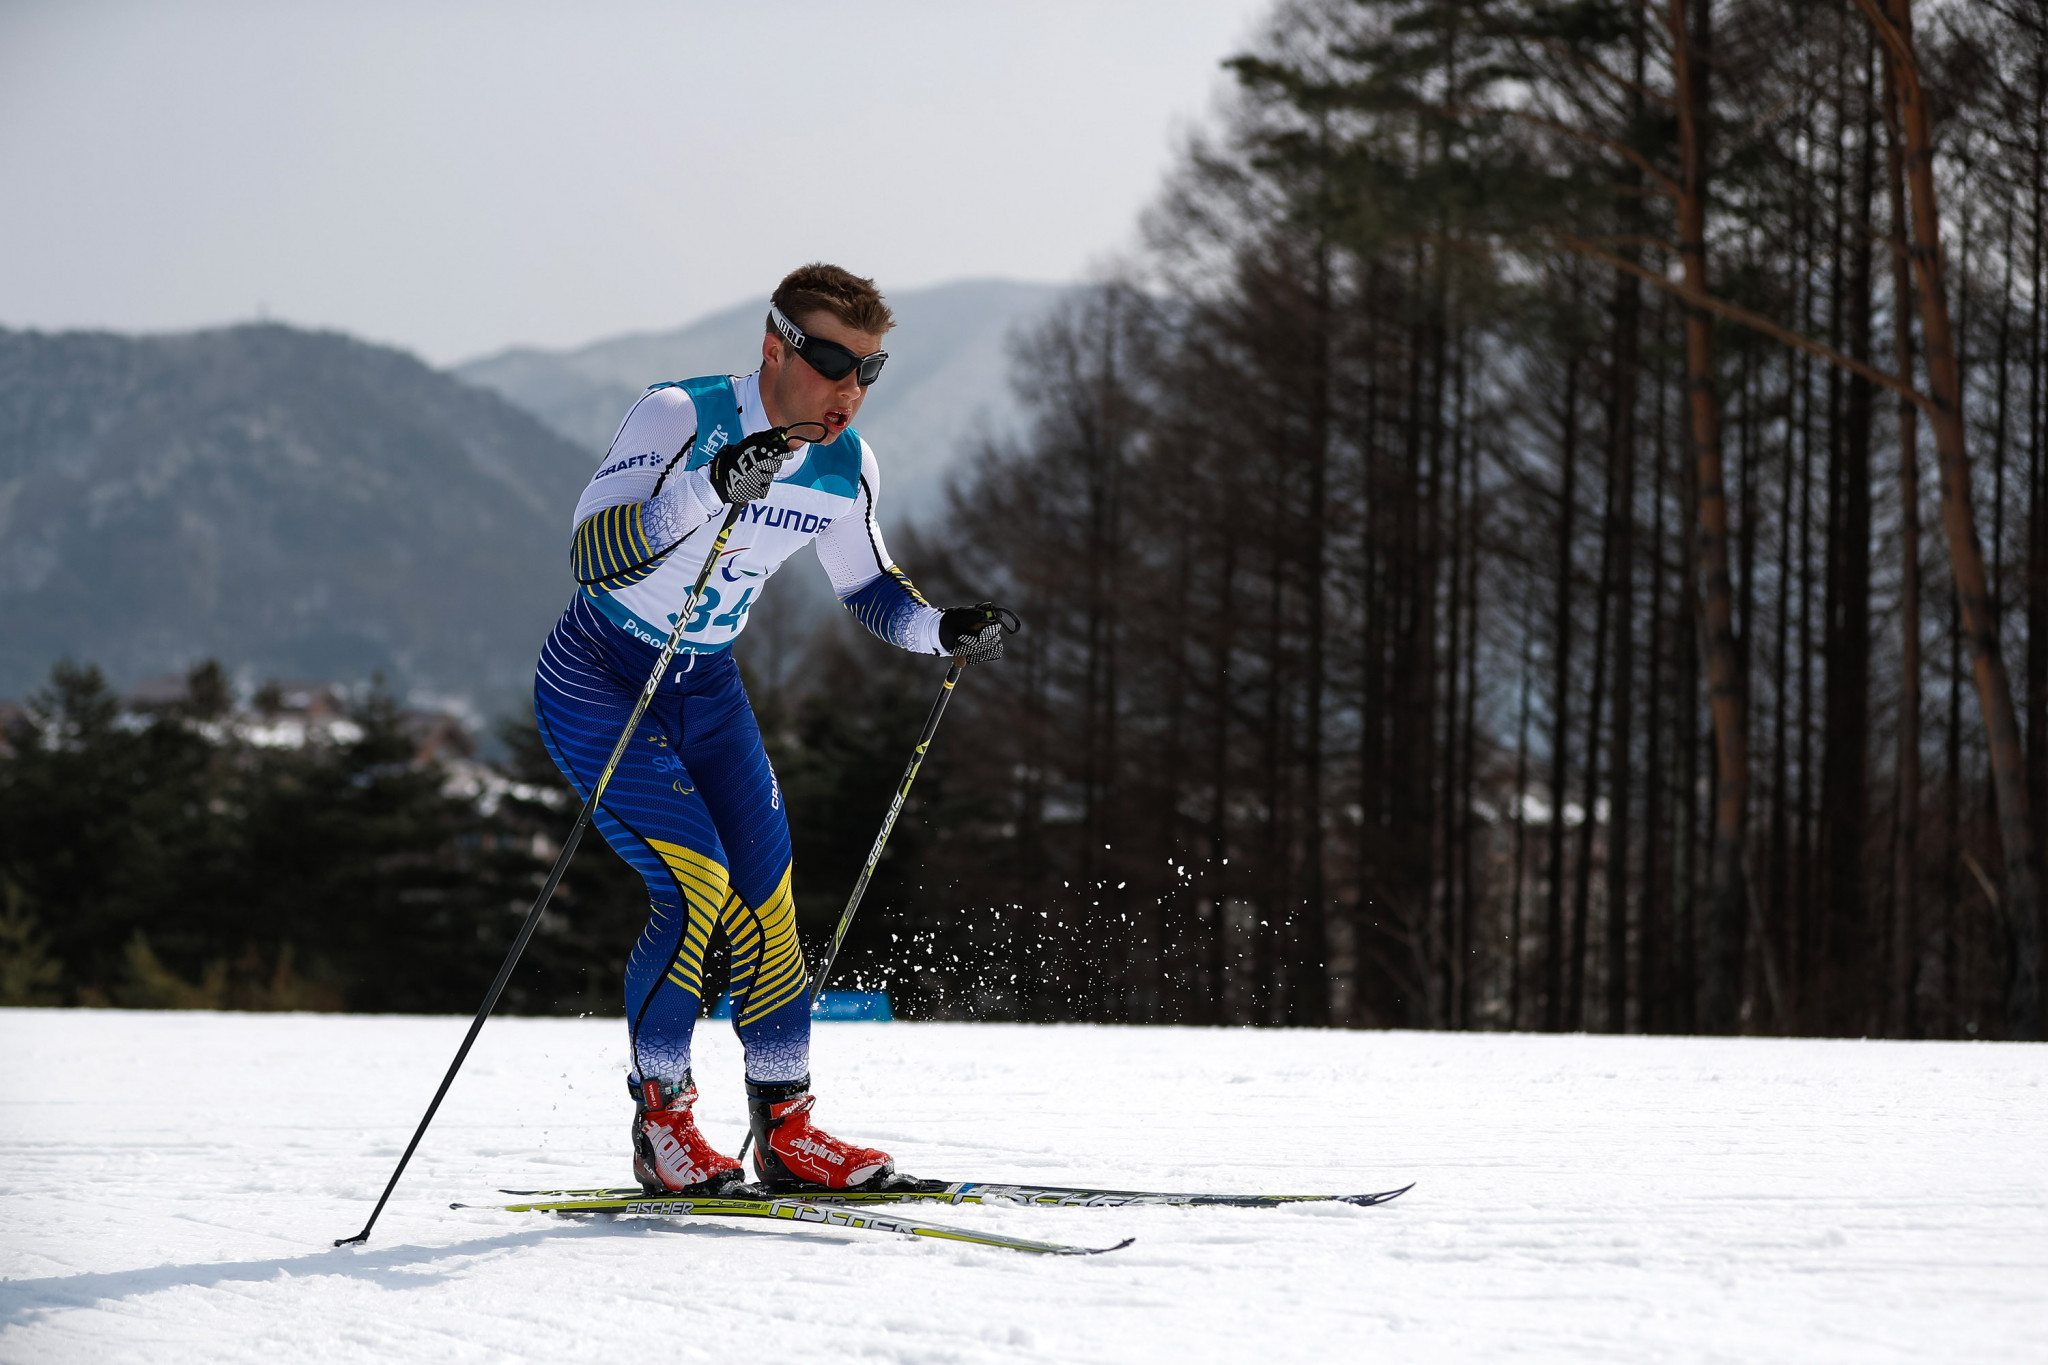 Zebastian Modin won the visually impaired middle cross-country event at the World Para Nordic Skiing World Cup in Östersund ©Getty Images